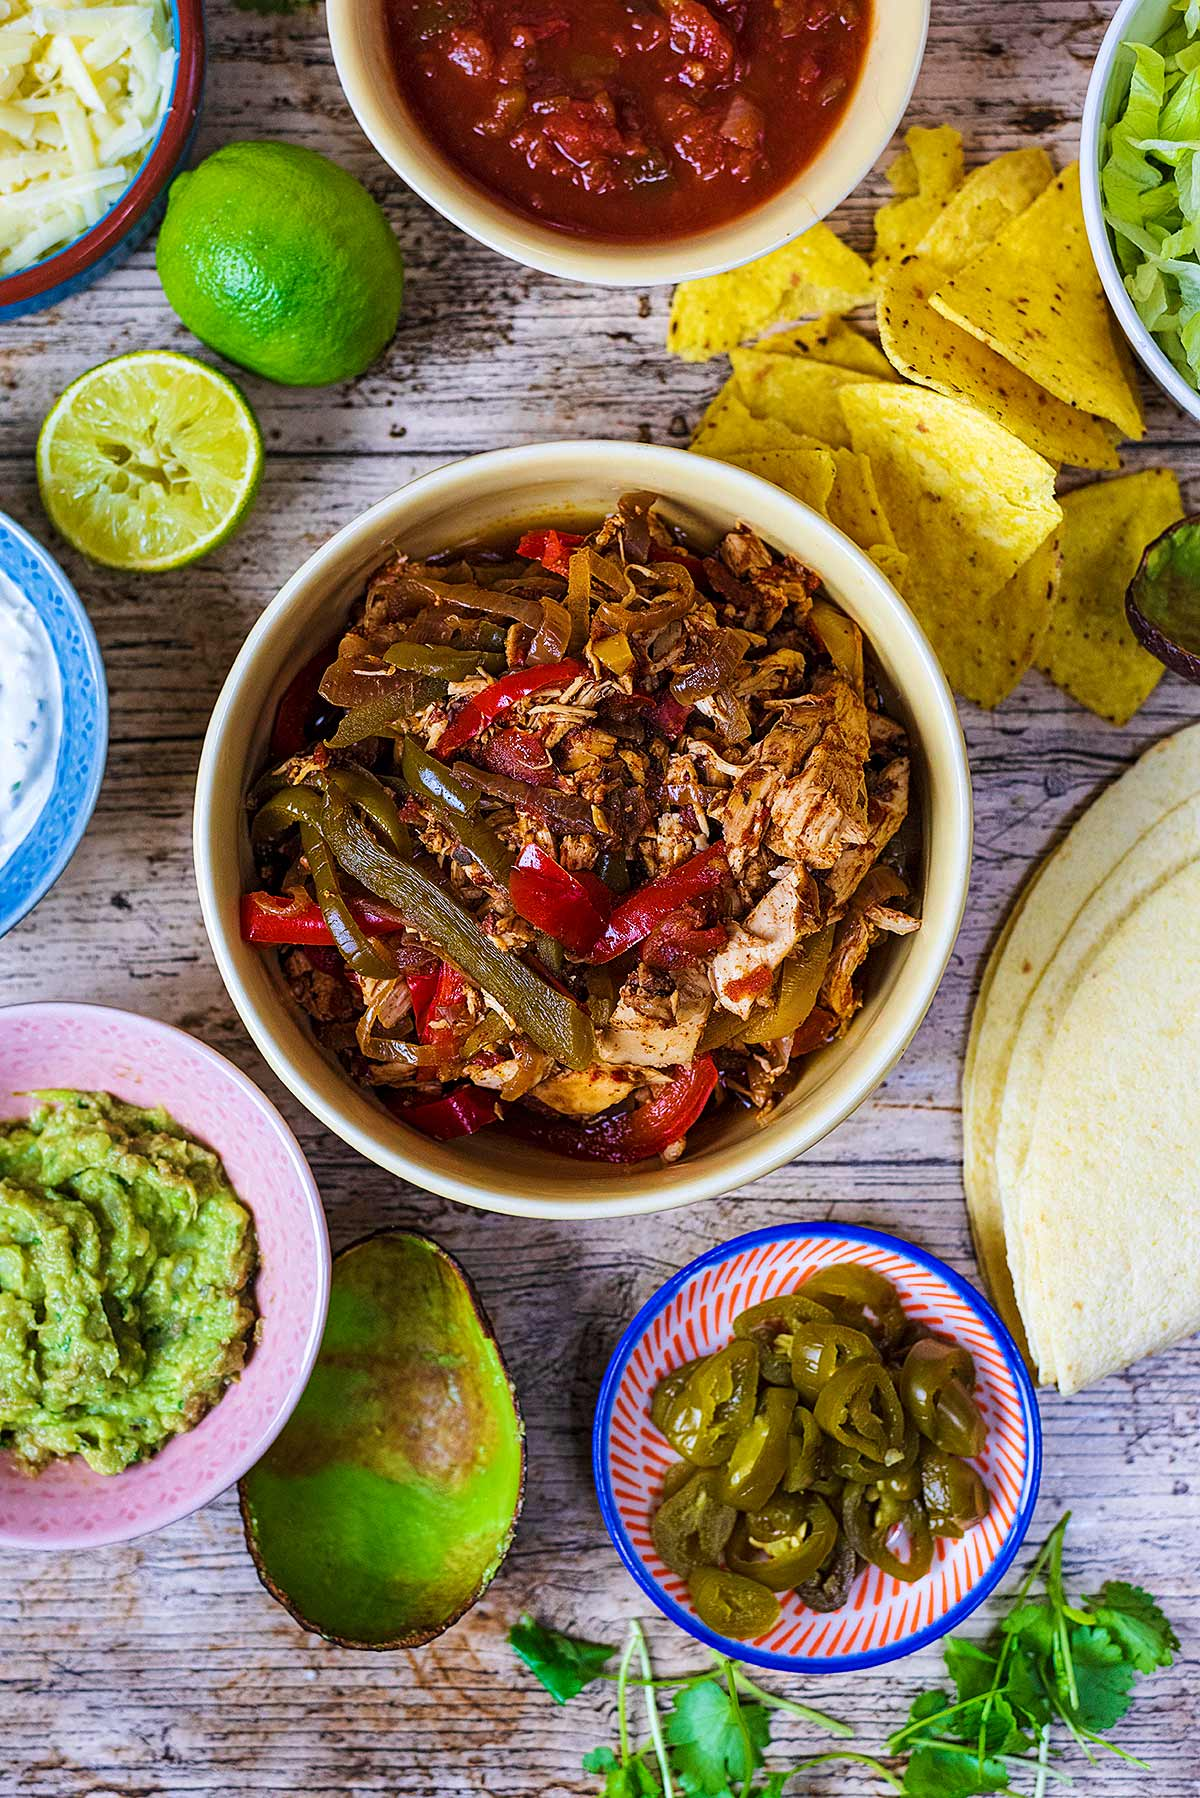 A bowl of fajita filling surrounded by salsa, guacamole, tortilla wraps, jalapenos and tortilla chips